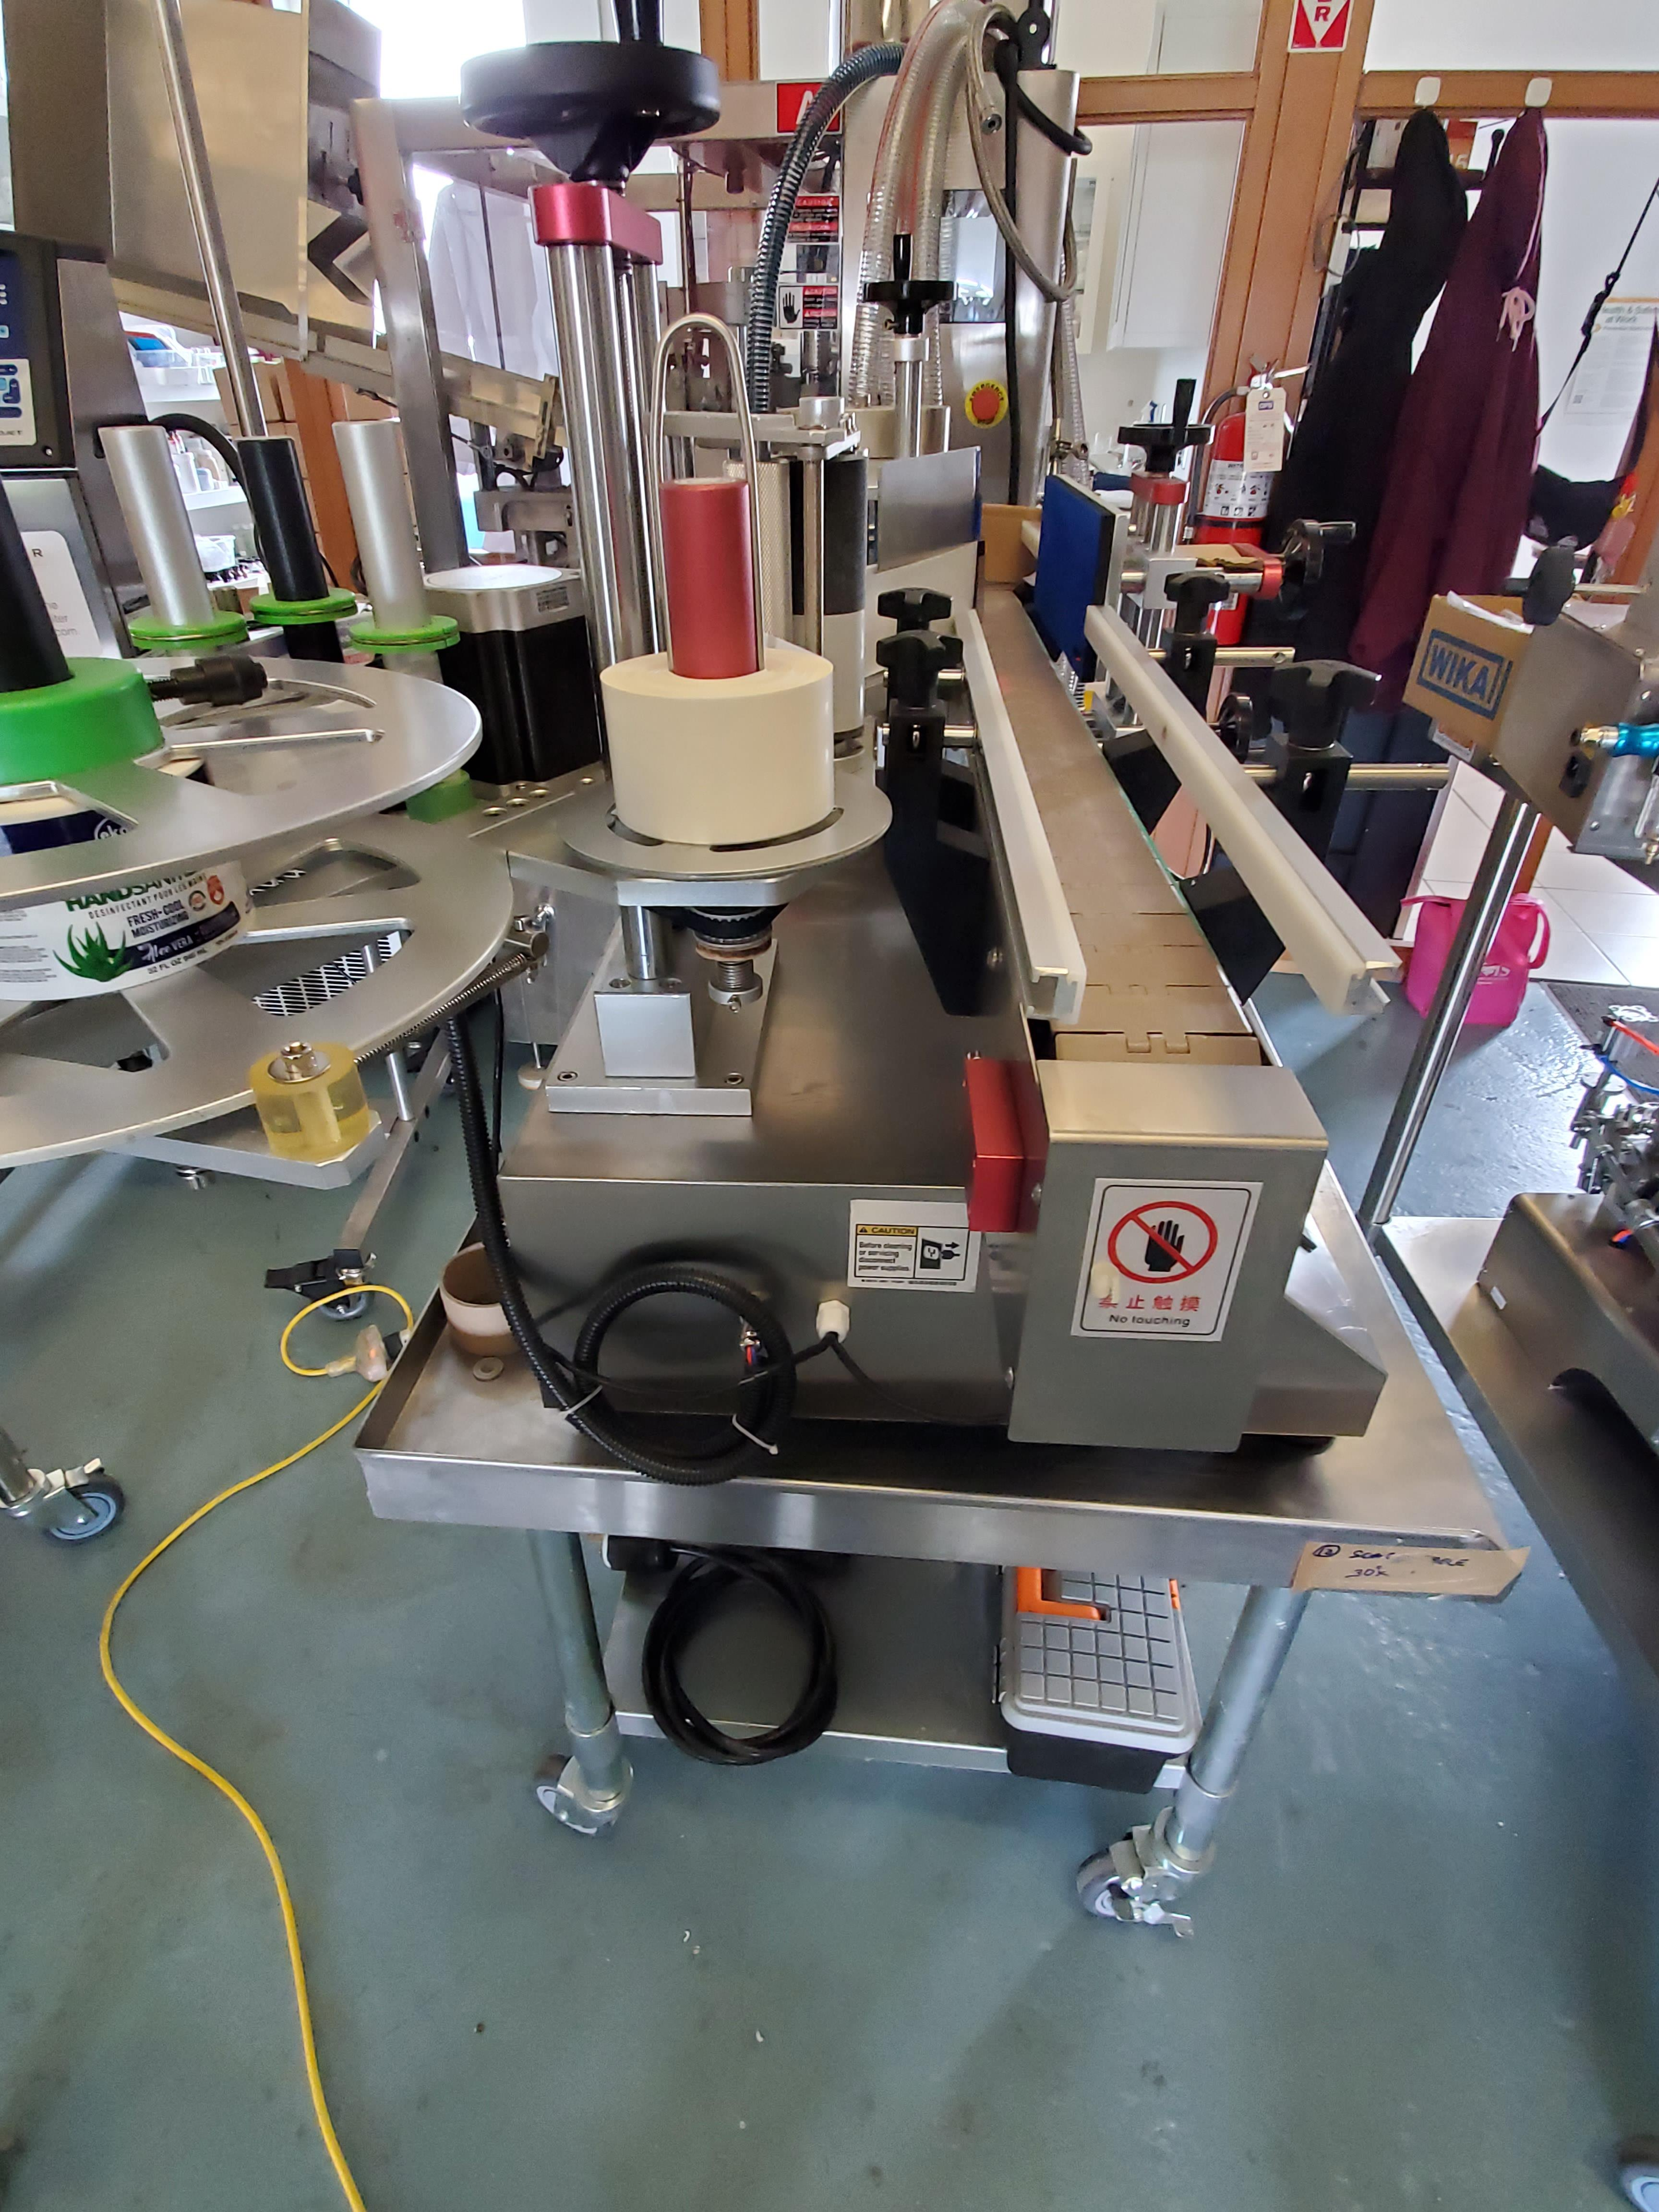 AM-300LM High Speed Pressure Sensitive wrap around labeler - Table Top Model - Image 3 of 5